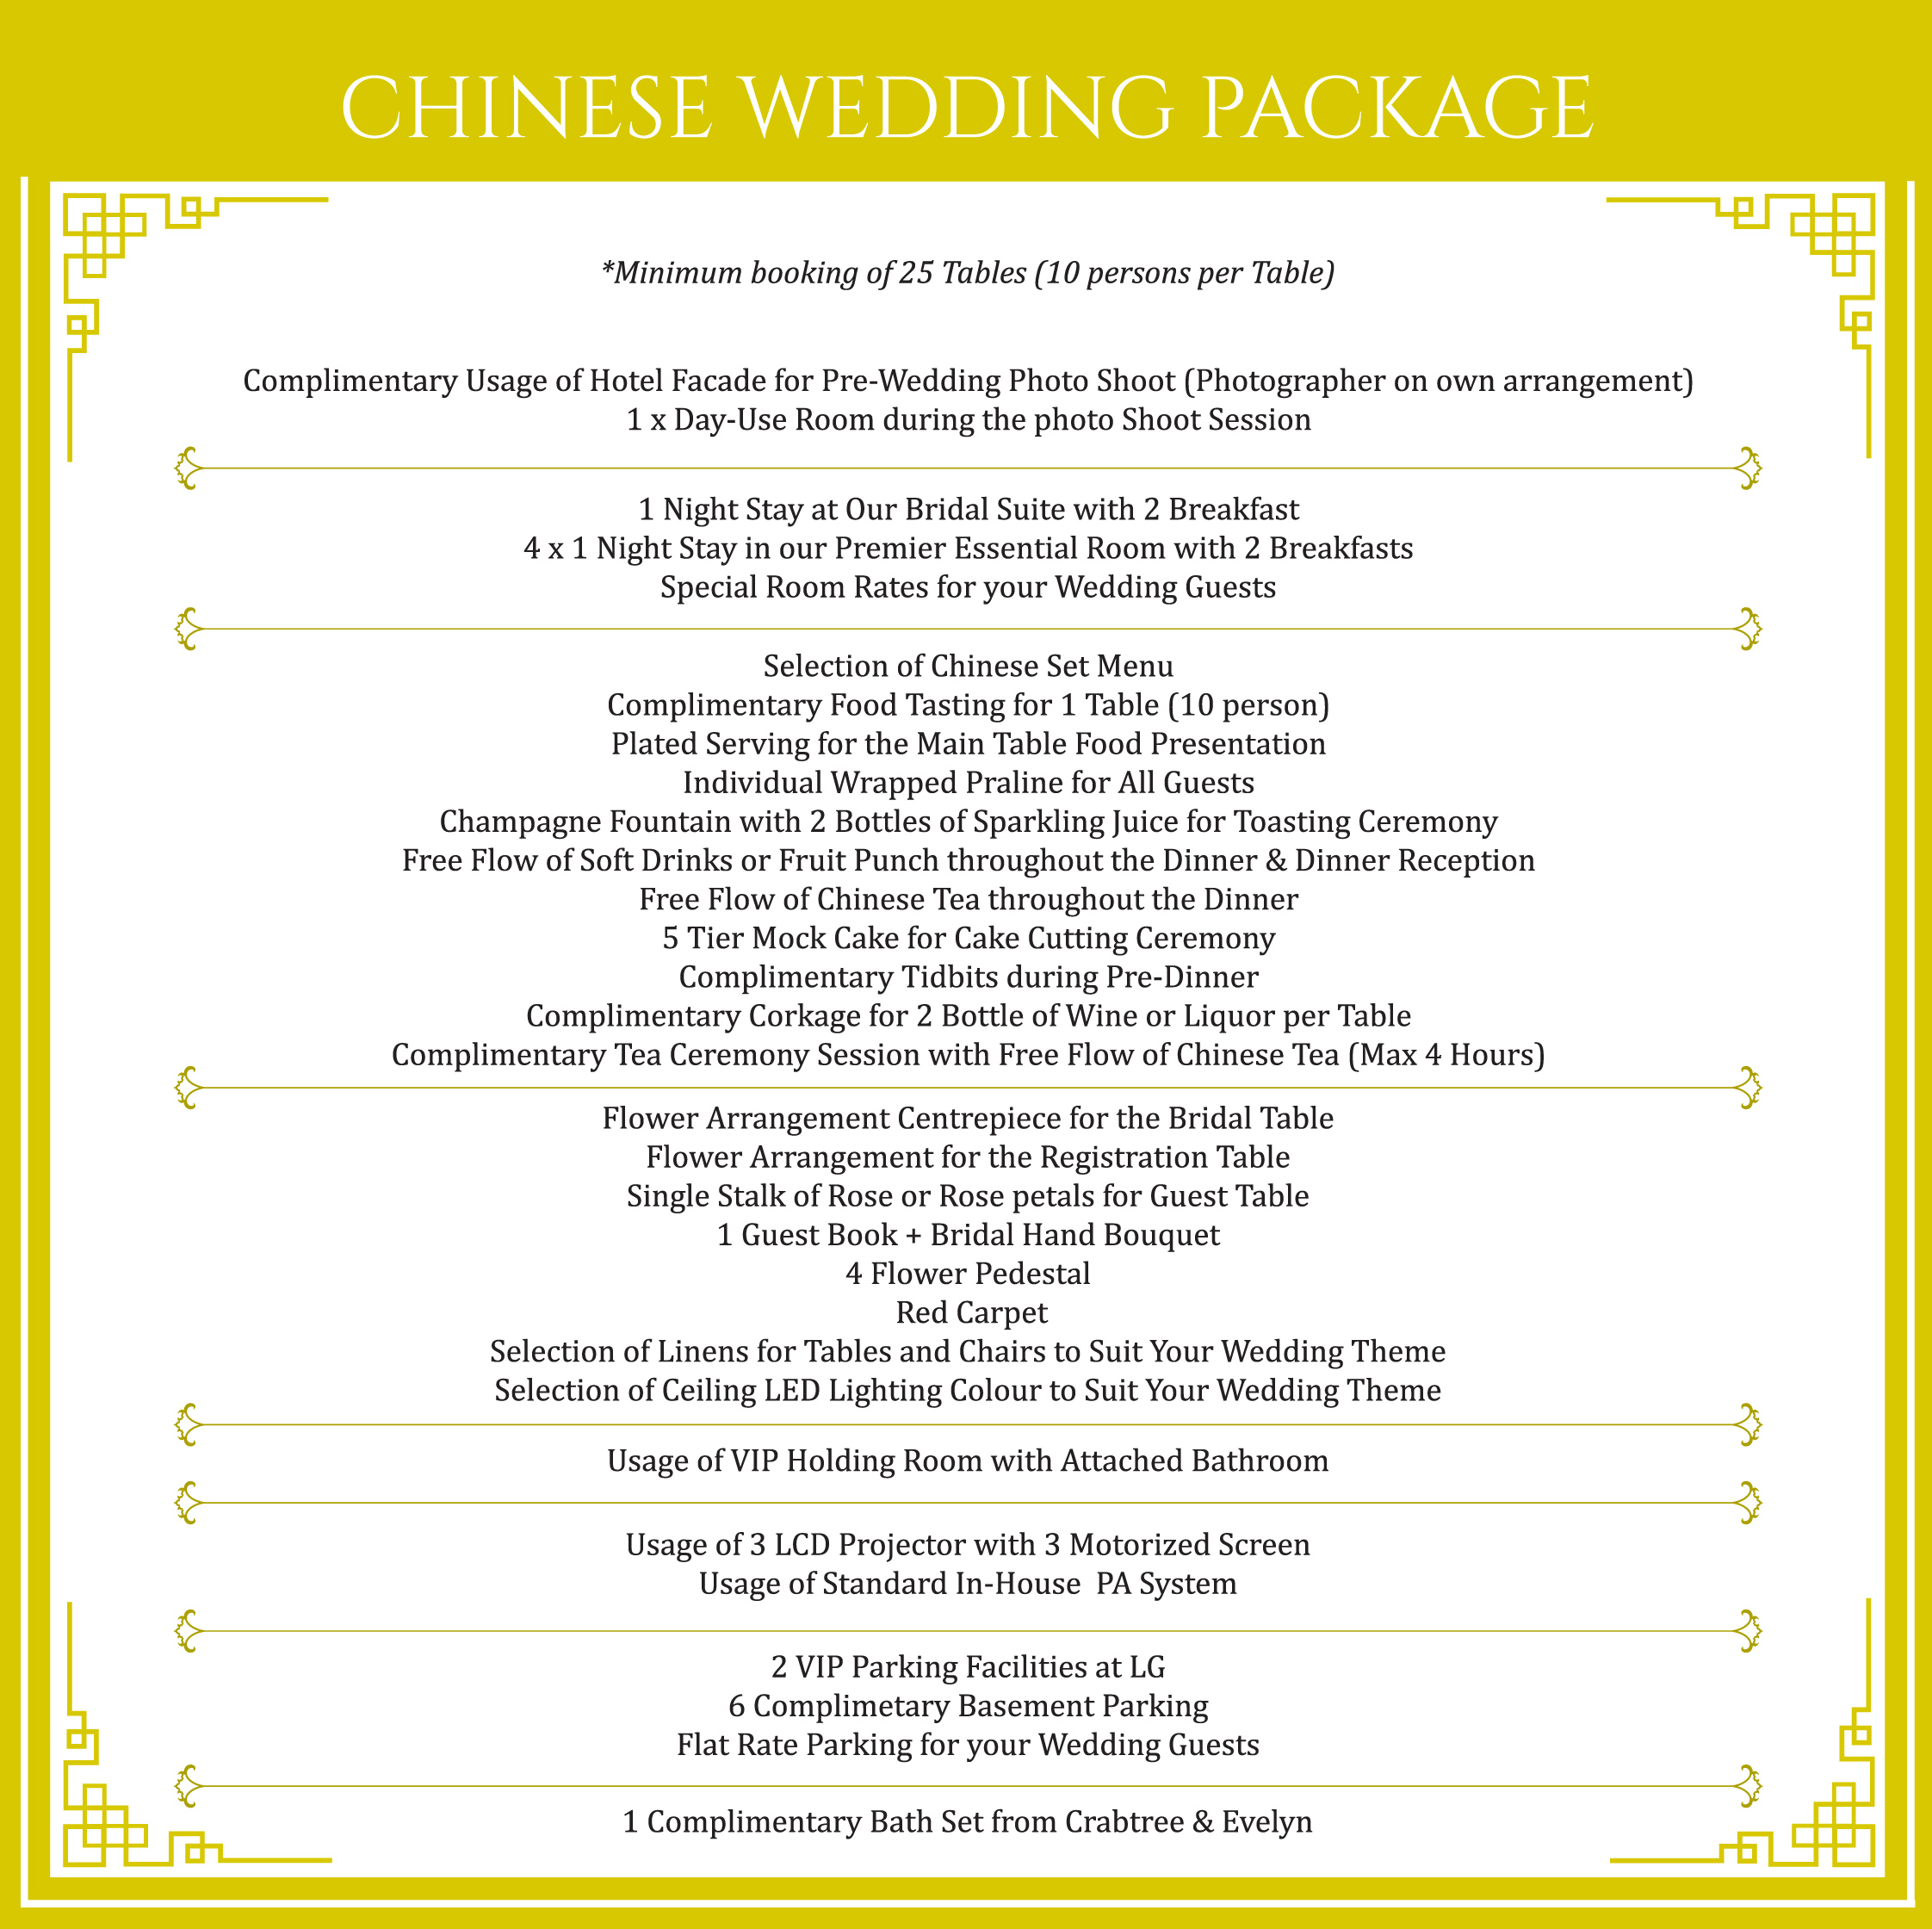 Image Malay Themed Wedding Package